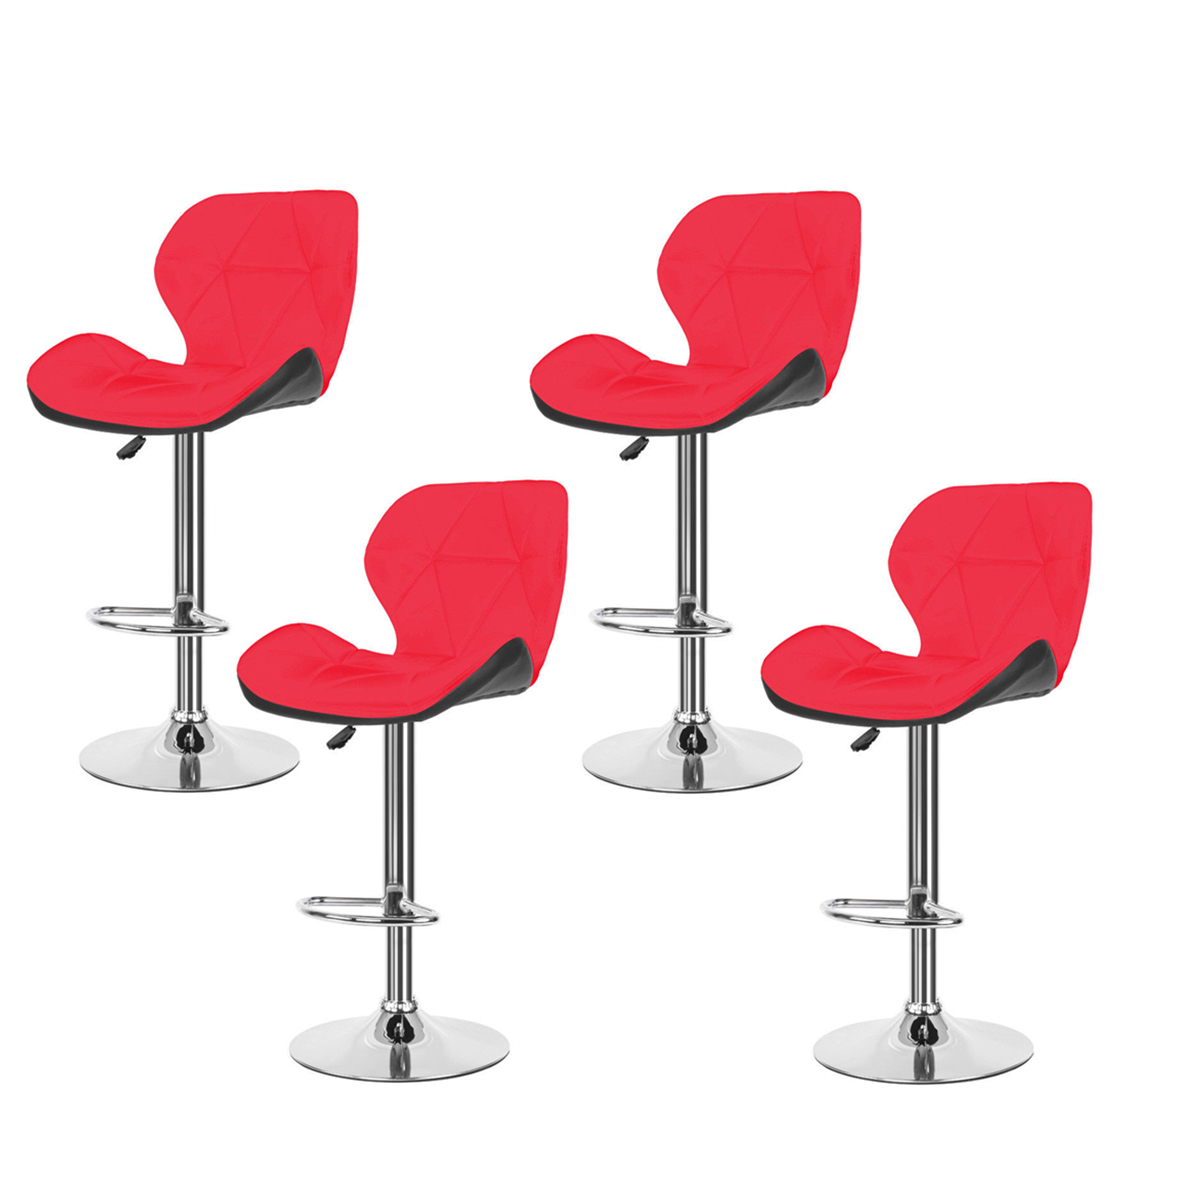 Prime Details About Set Of 4 Modern Bar Stool Pu Leather Seat Dining Chair Counter Kitchen Red New Camellatalisay Diy Chair Ideas Camellatalisaycom